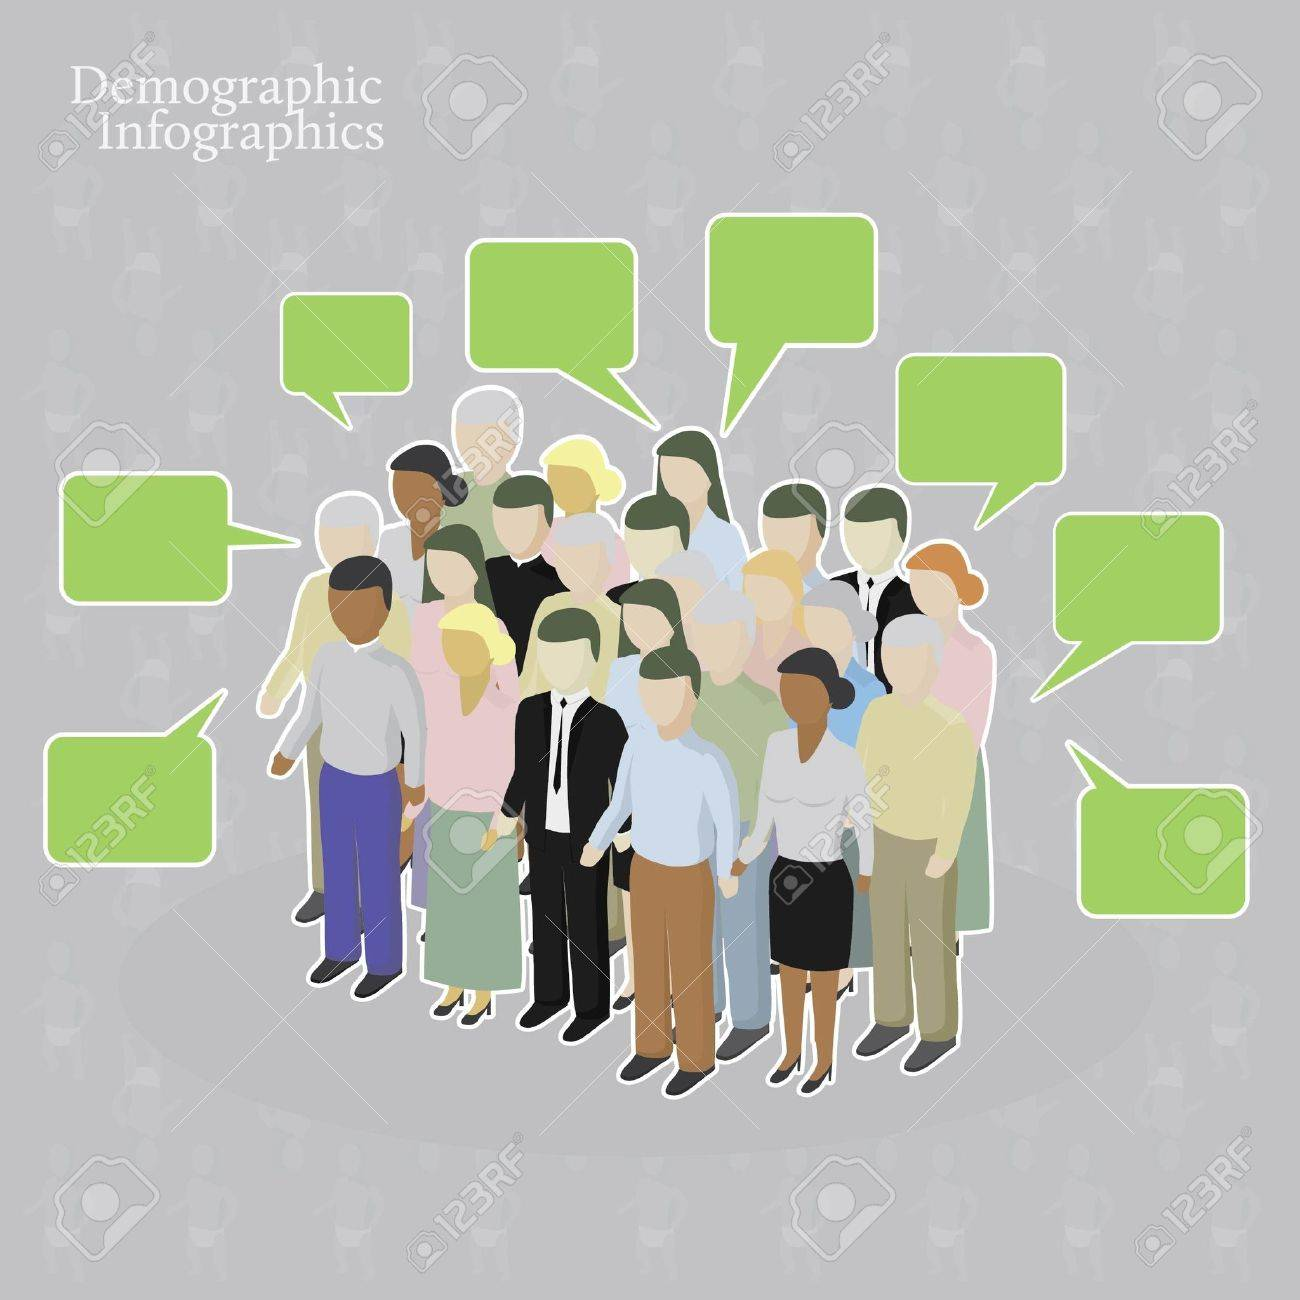 Demographic infographics. Crowd with speech bubbles - 10605555